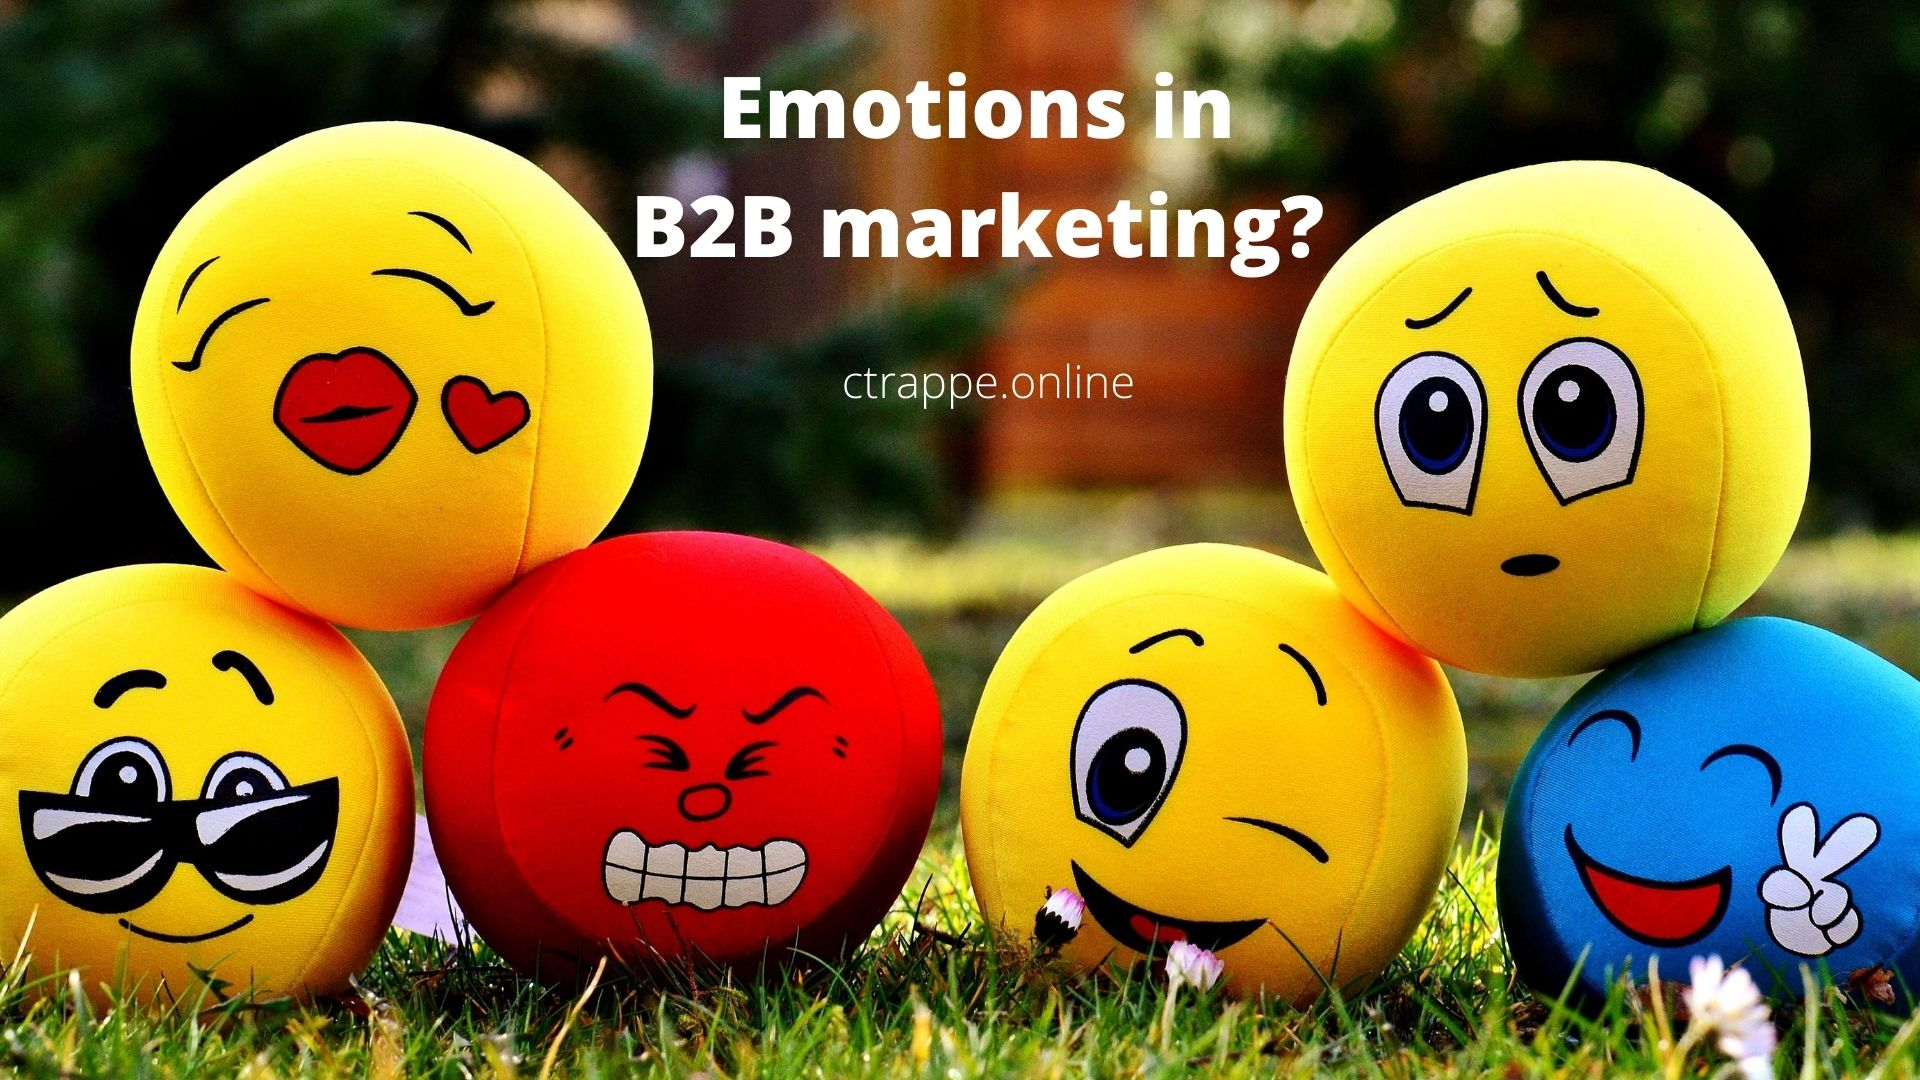 B2B marketing strategy and emotion